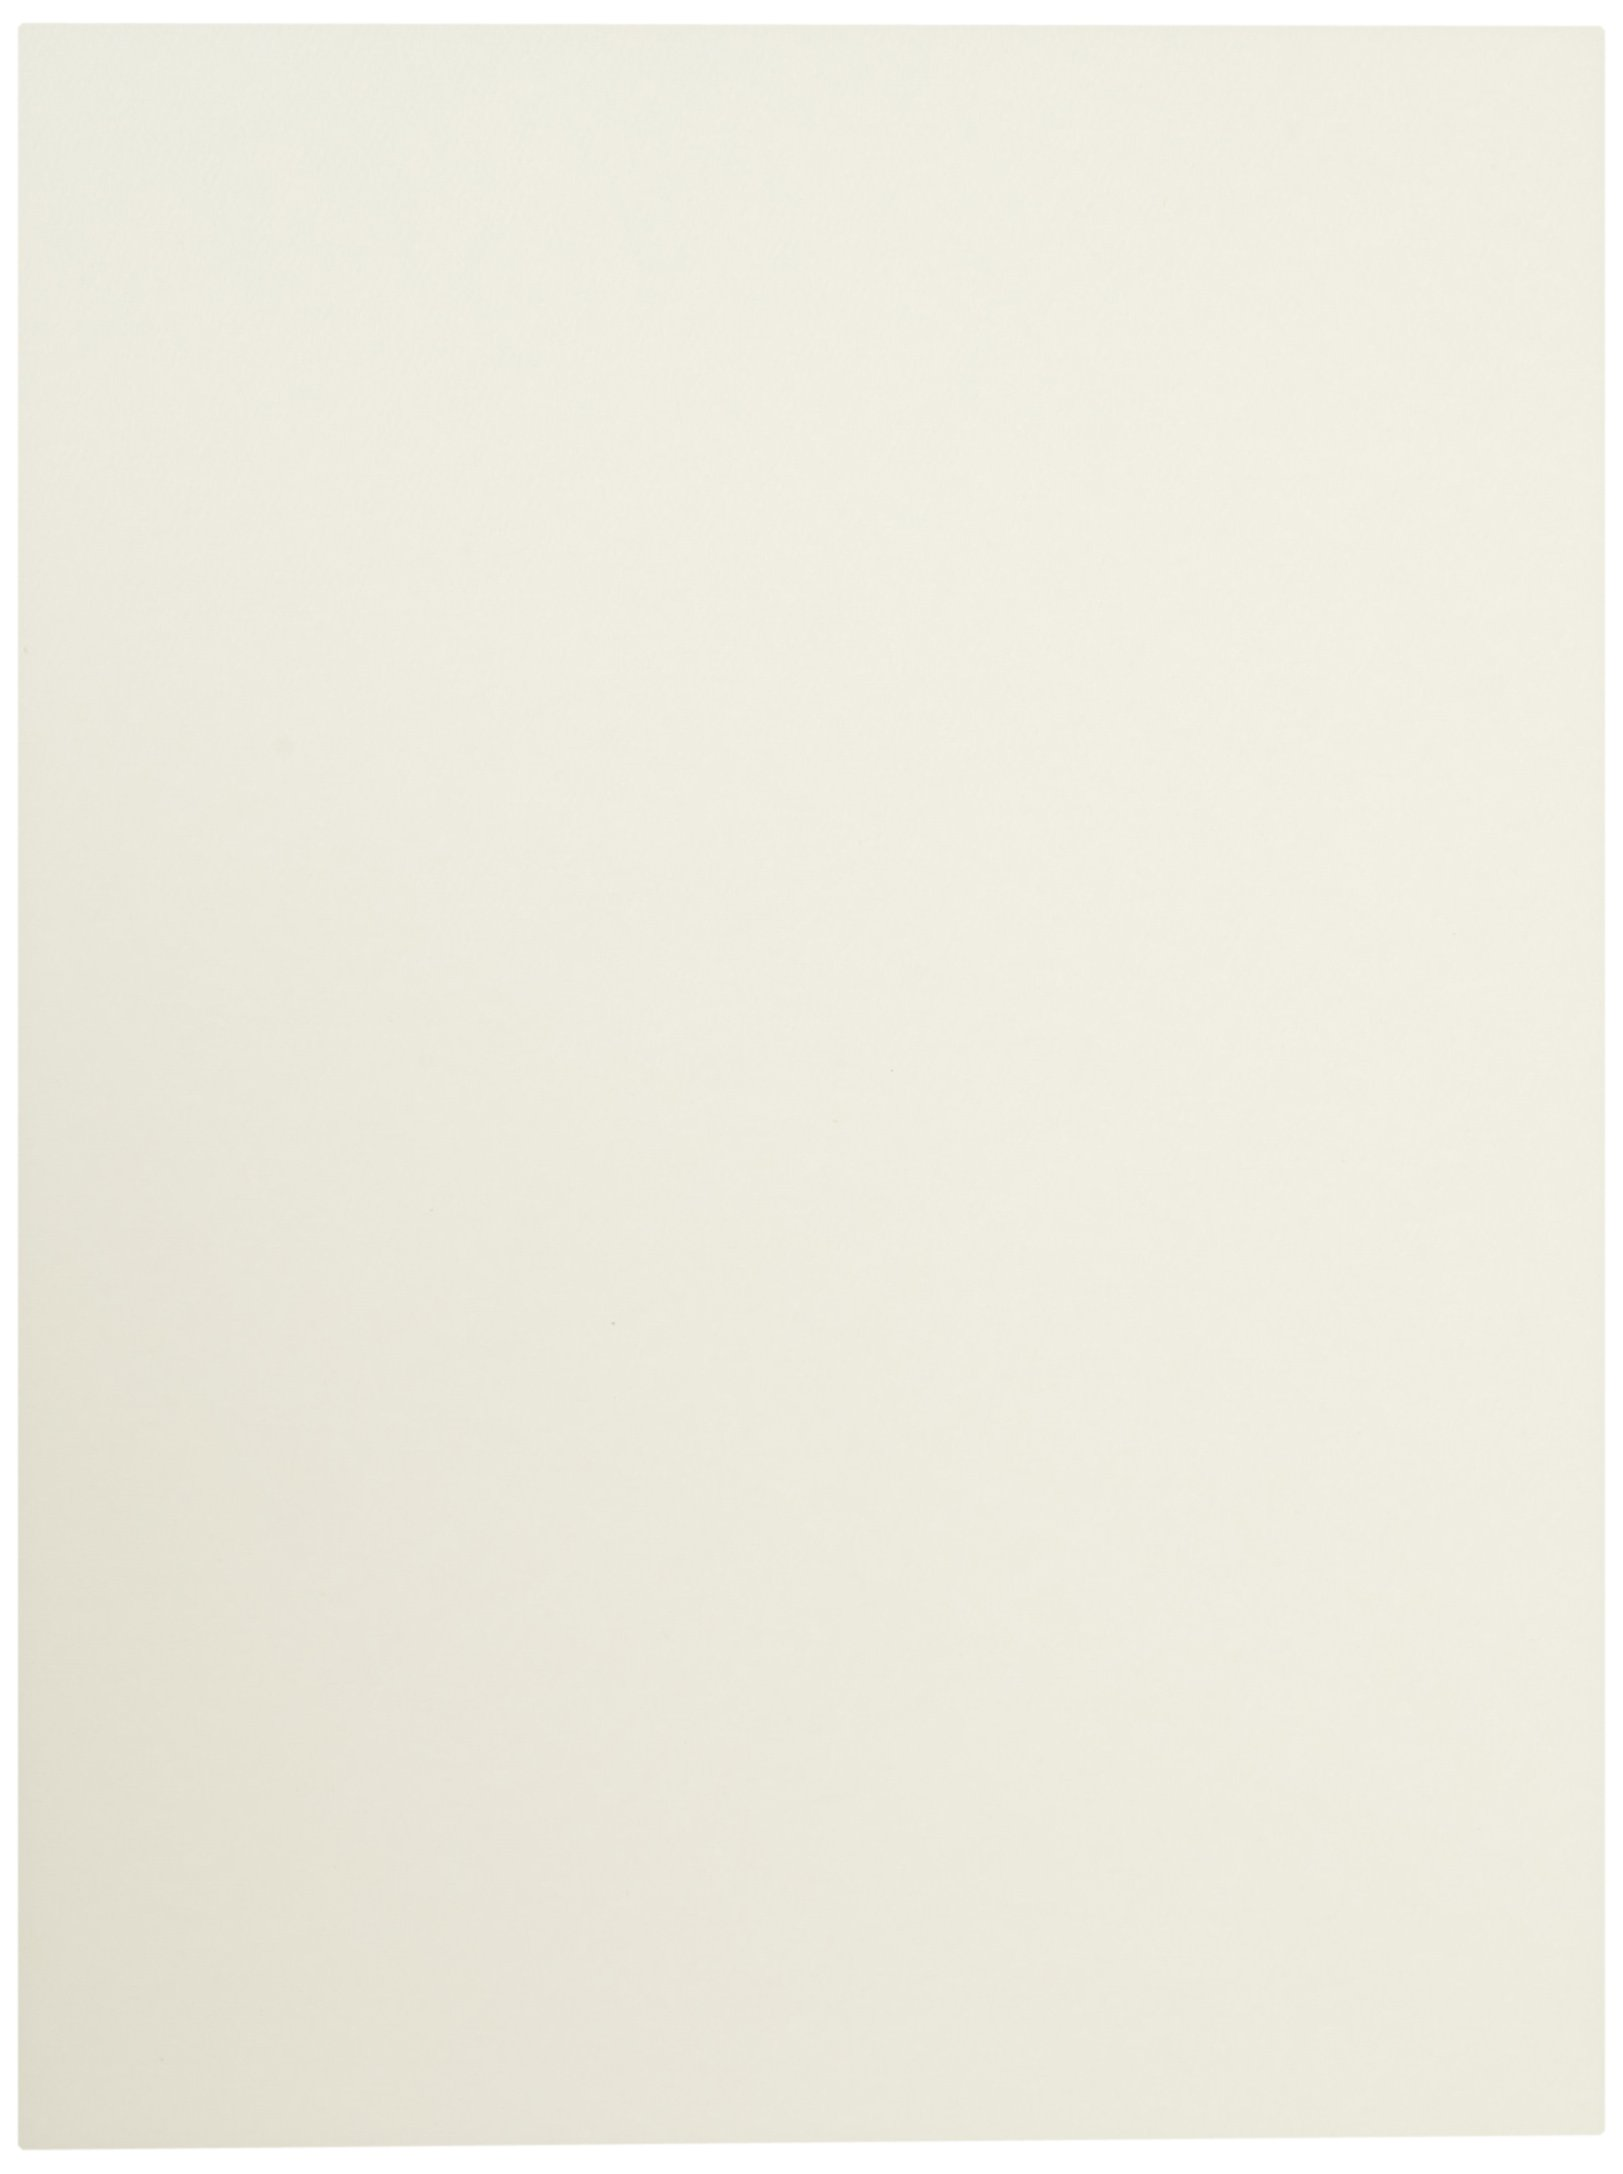 Sax Watercolor Paper Beginner Paper, 9 x 12 Inches, Natural White, Pack of 100 - 408400 by Sax